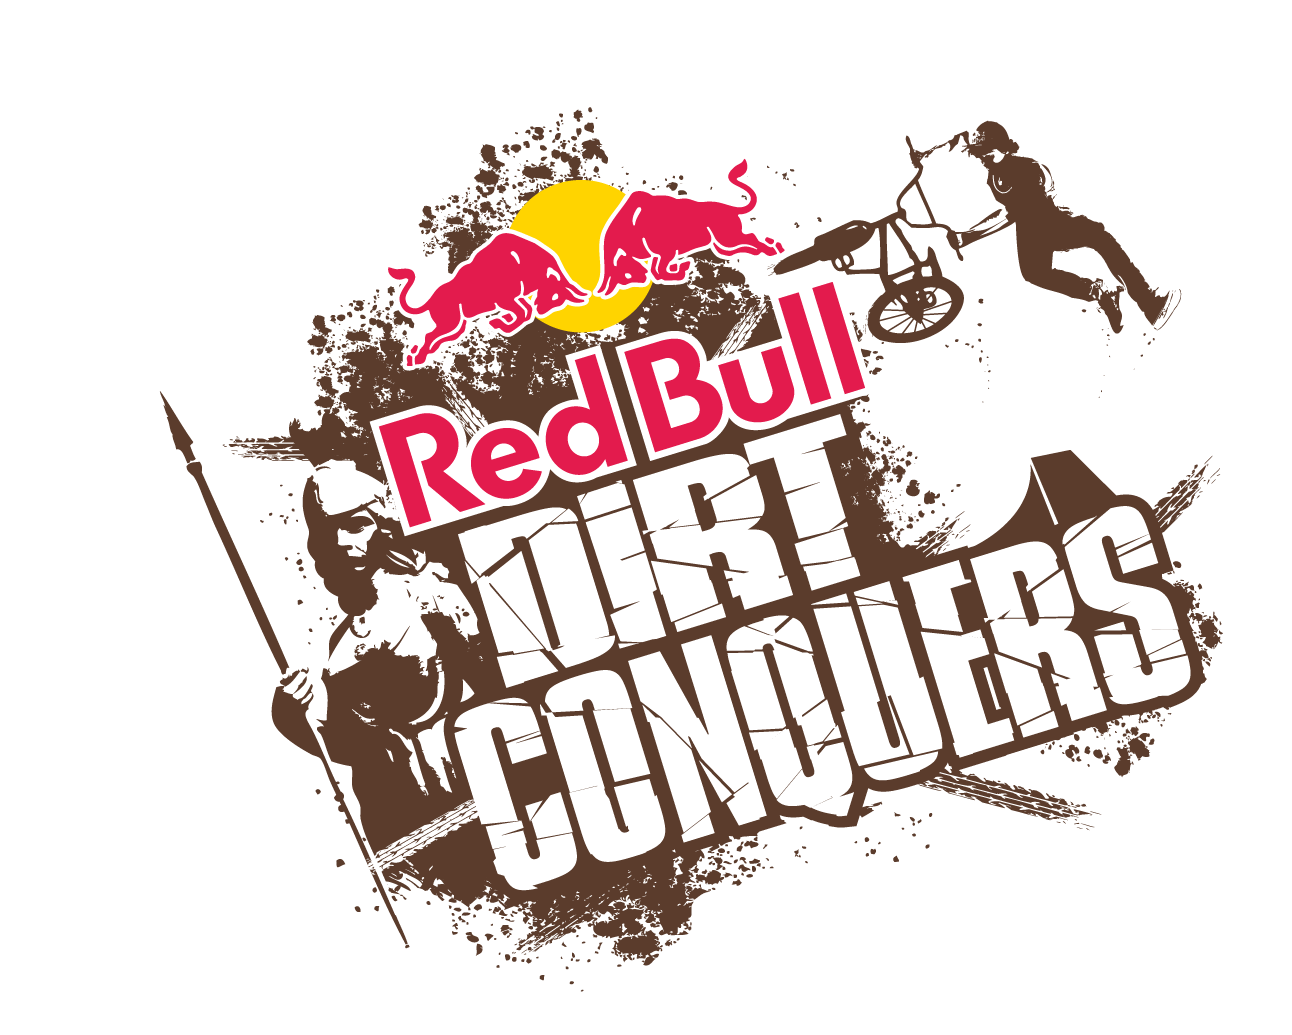 redbull logo vector free large images red bull